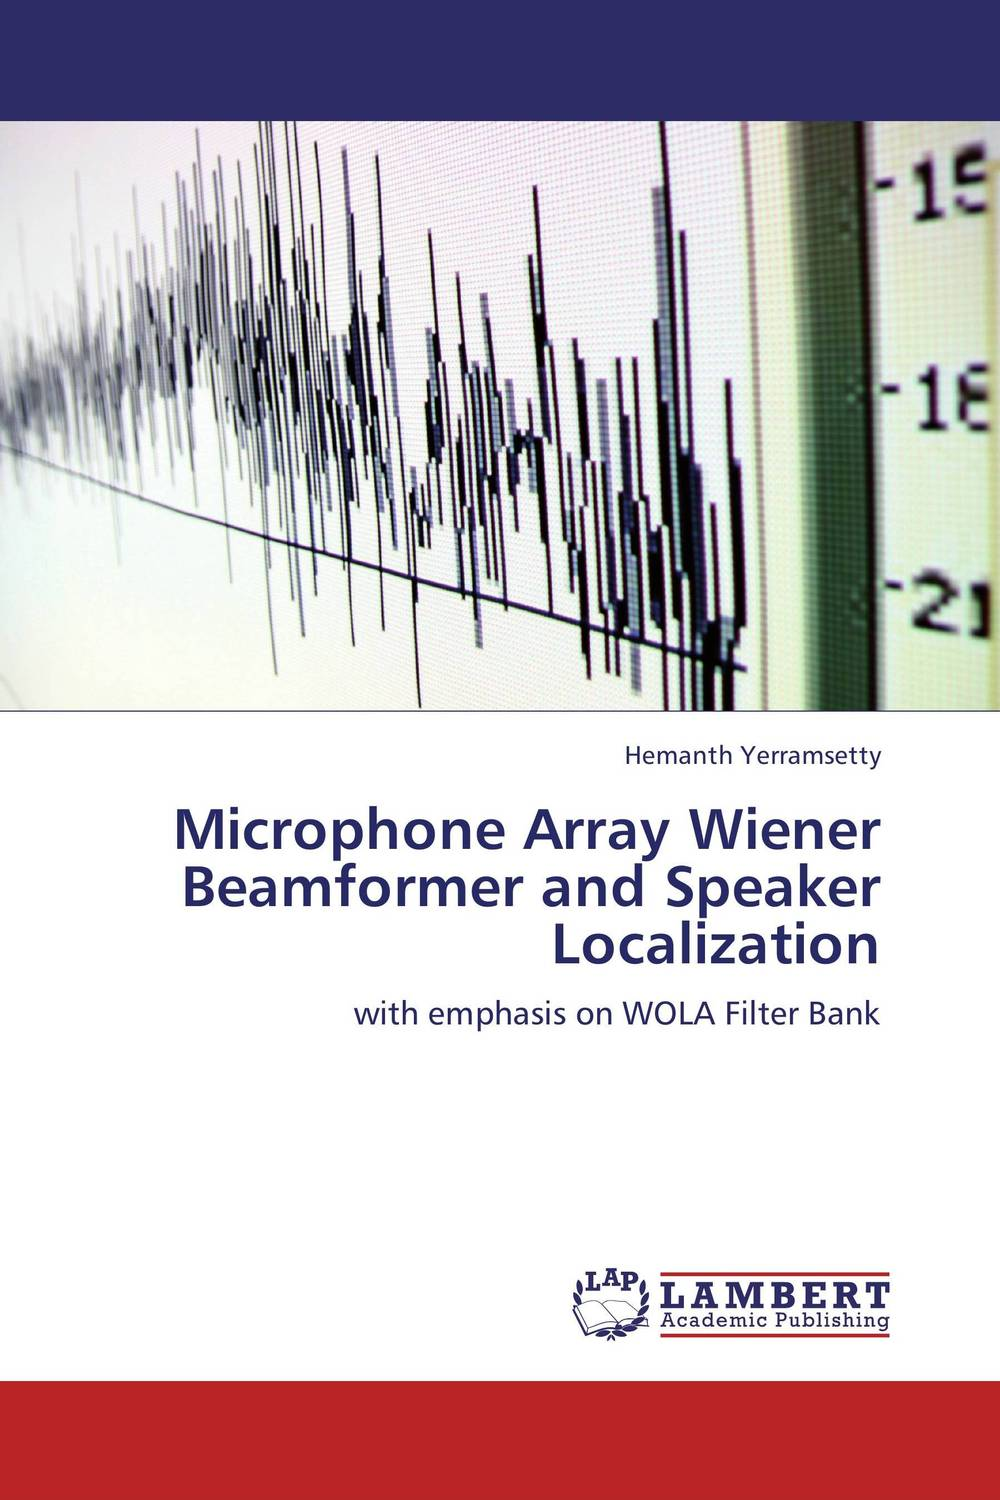 Microphone Array Wiener Beamformer and Speaker Localization cerebral palsy speech recognition system